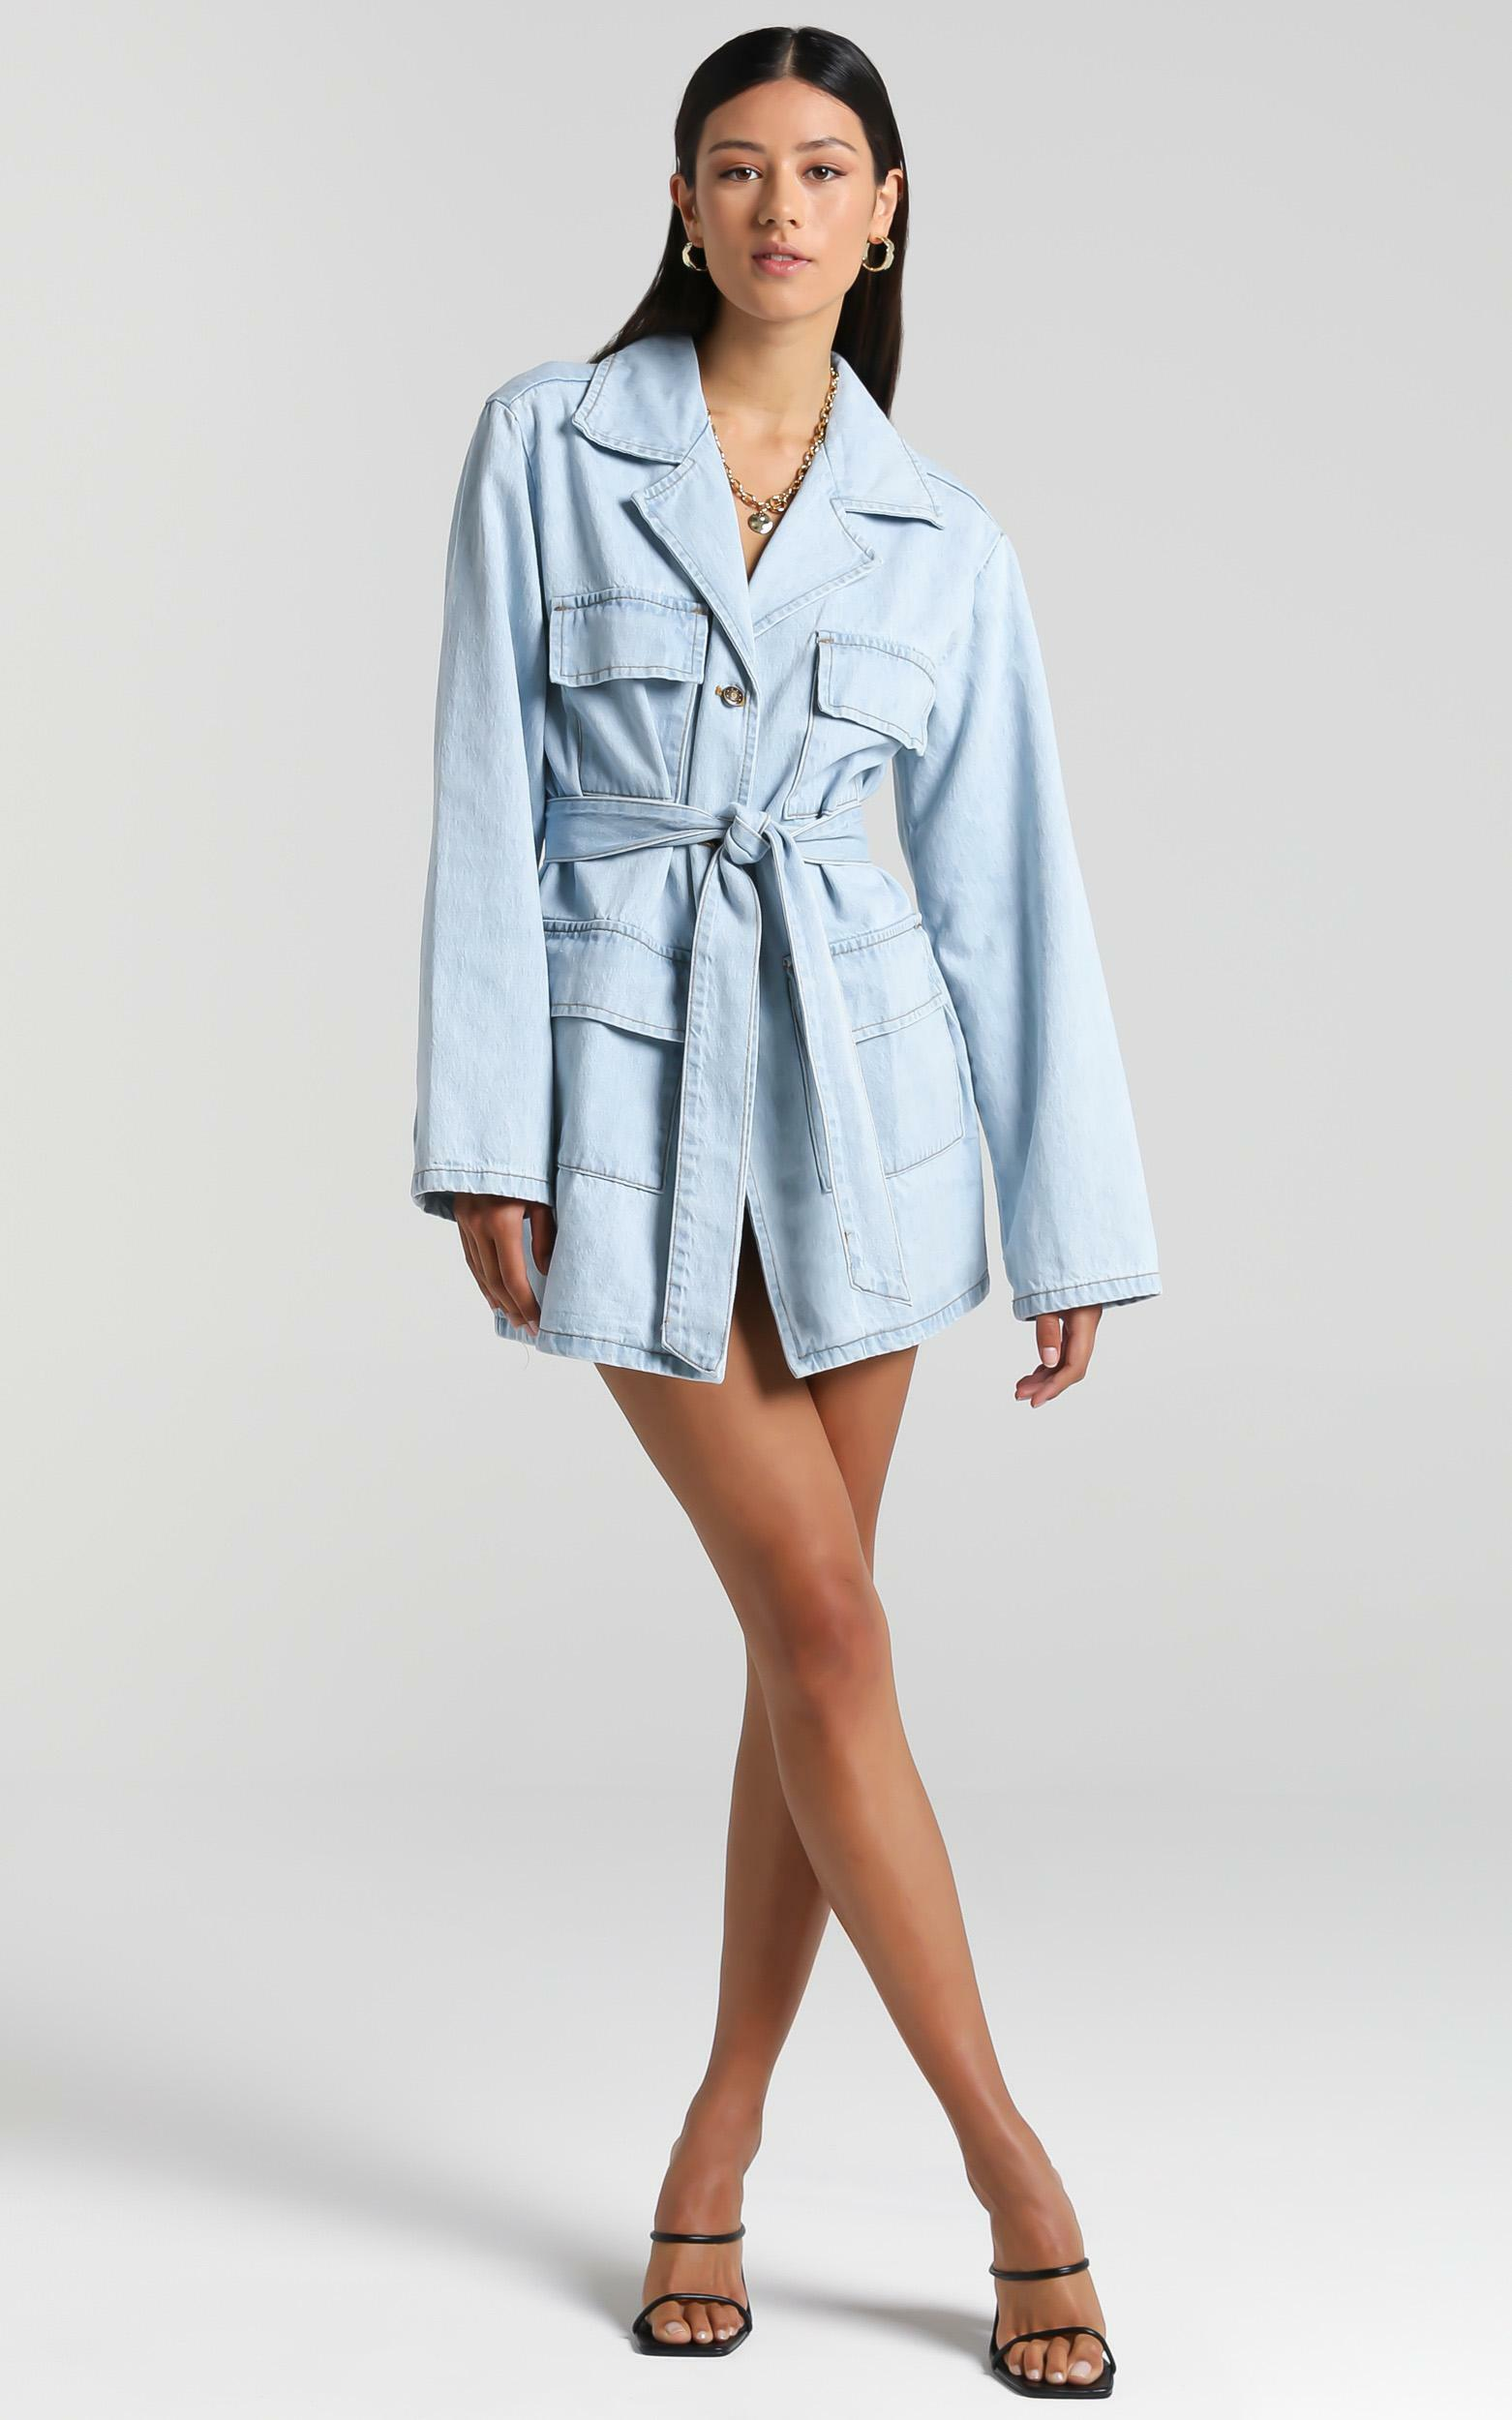 Lioness - Victory Boulevard Mini Dress in Light Wash - 6 (XS), Blue, hi-res image number null